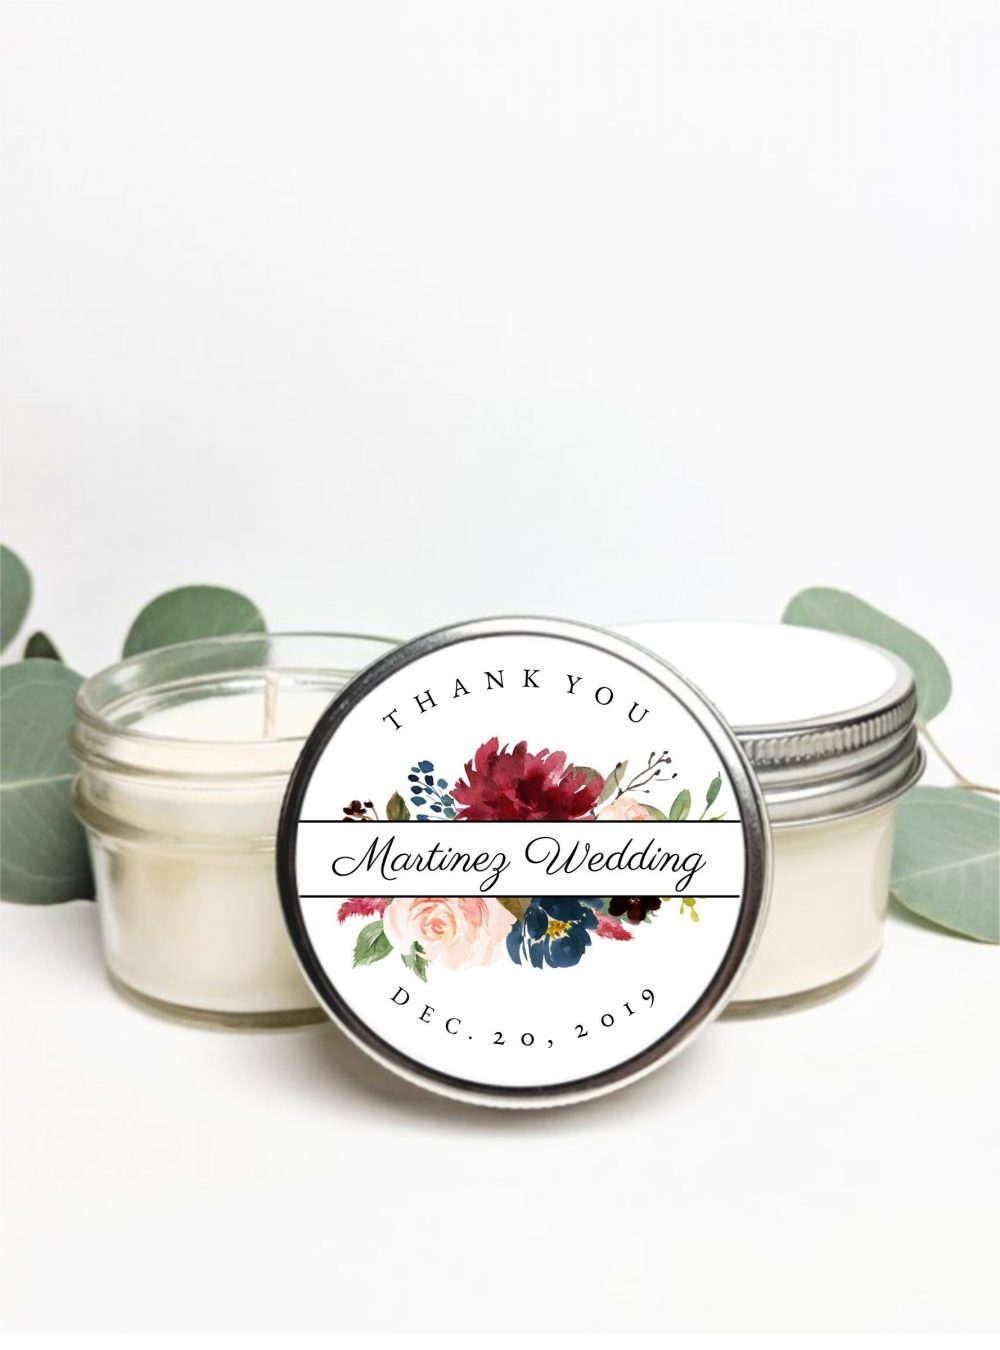 Set Of 50 Custom Wedding Favor Candles | Candle Favors Personalized Gift Soy Idea